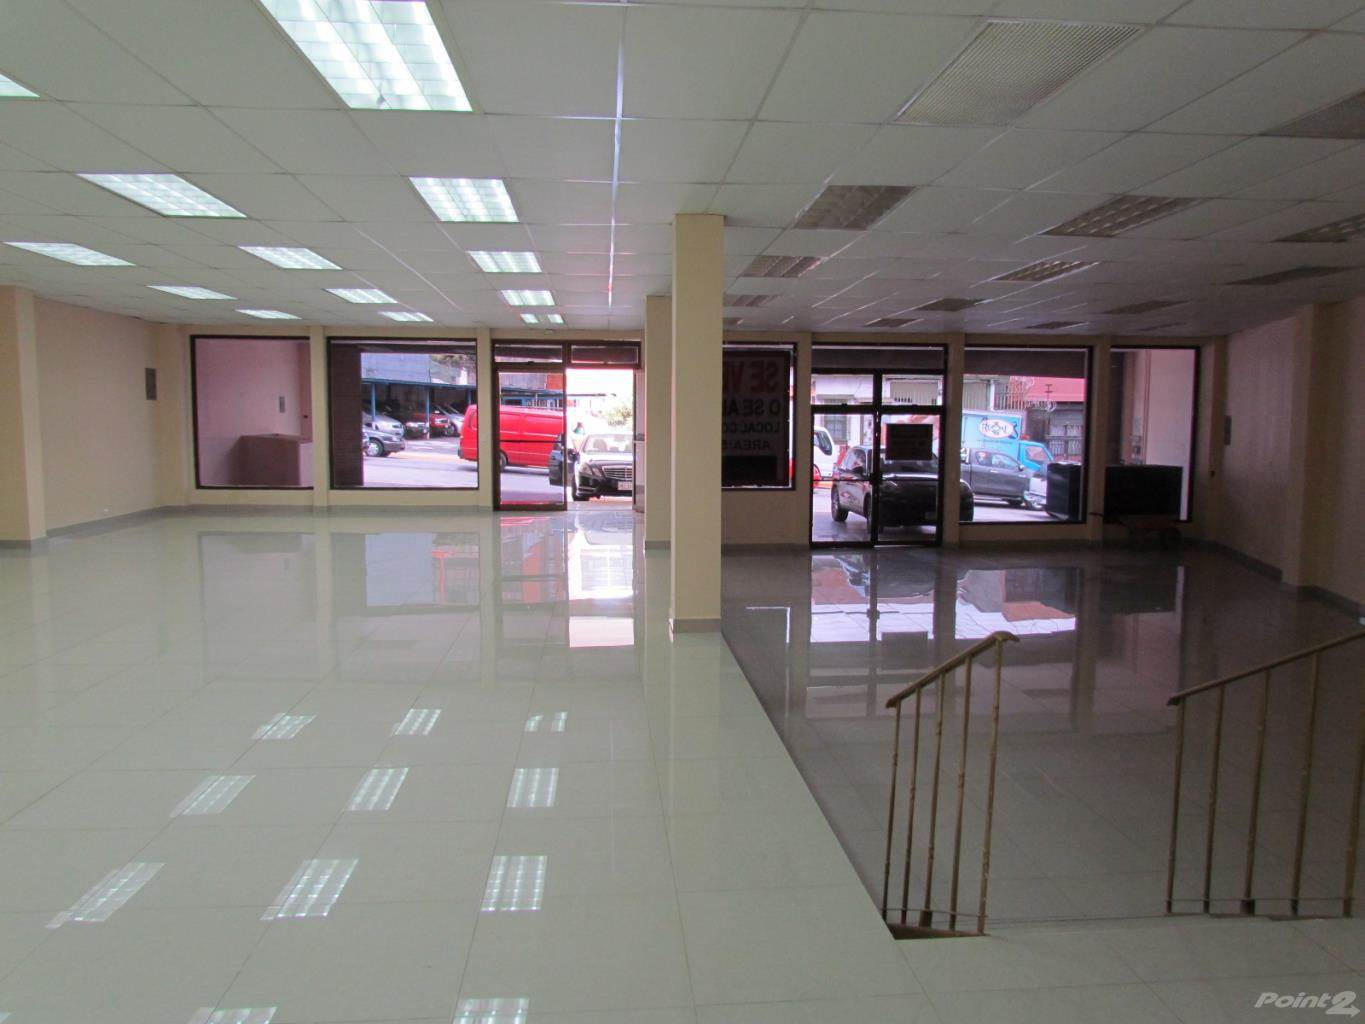 Comercial para alugar em Commercial Space for Rent or Sale, Excellent Location in Downtown San Jose. ID 8001, , San José   , Costa Rica